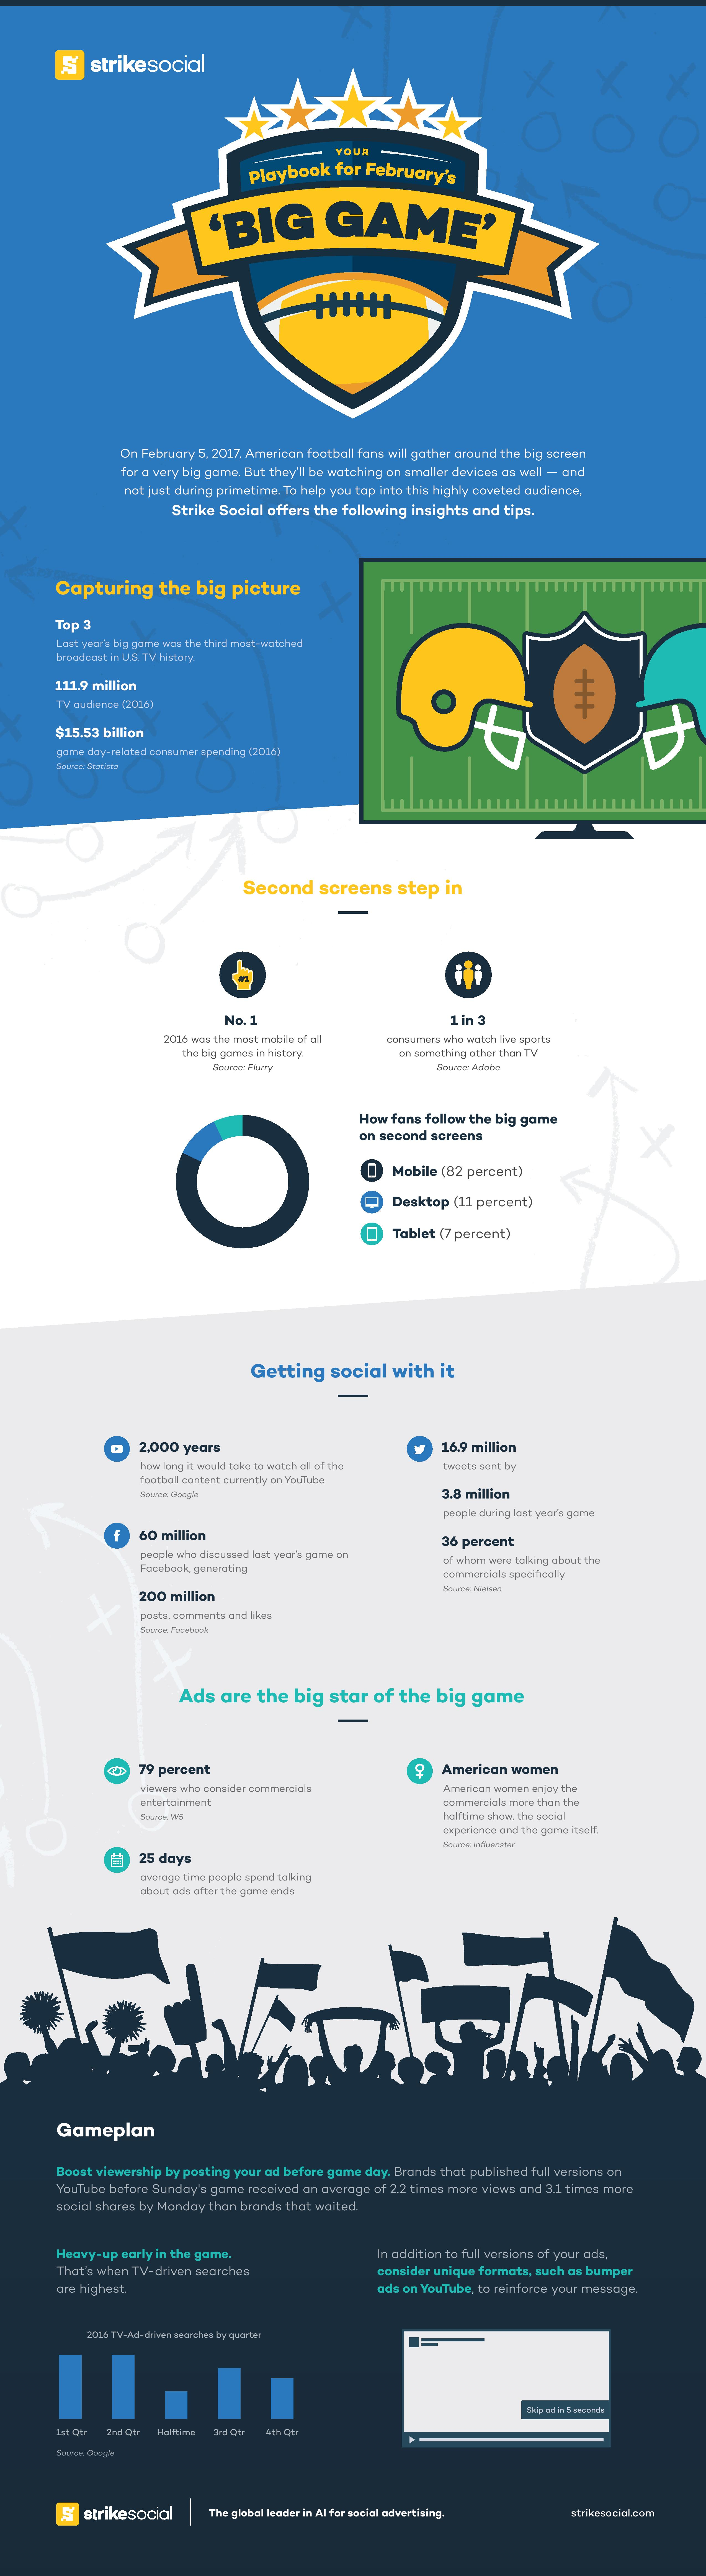 5 Tips to Create a Successful Social Media Strategy Around the 2017 Super Bowl [Infographic] | Social Media Today